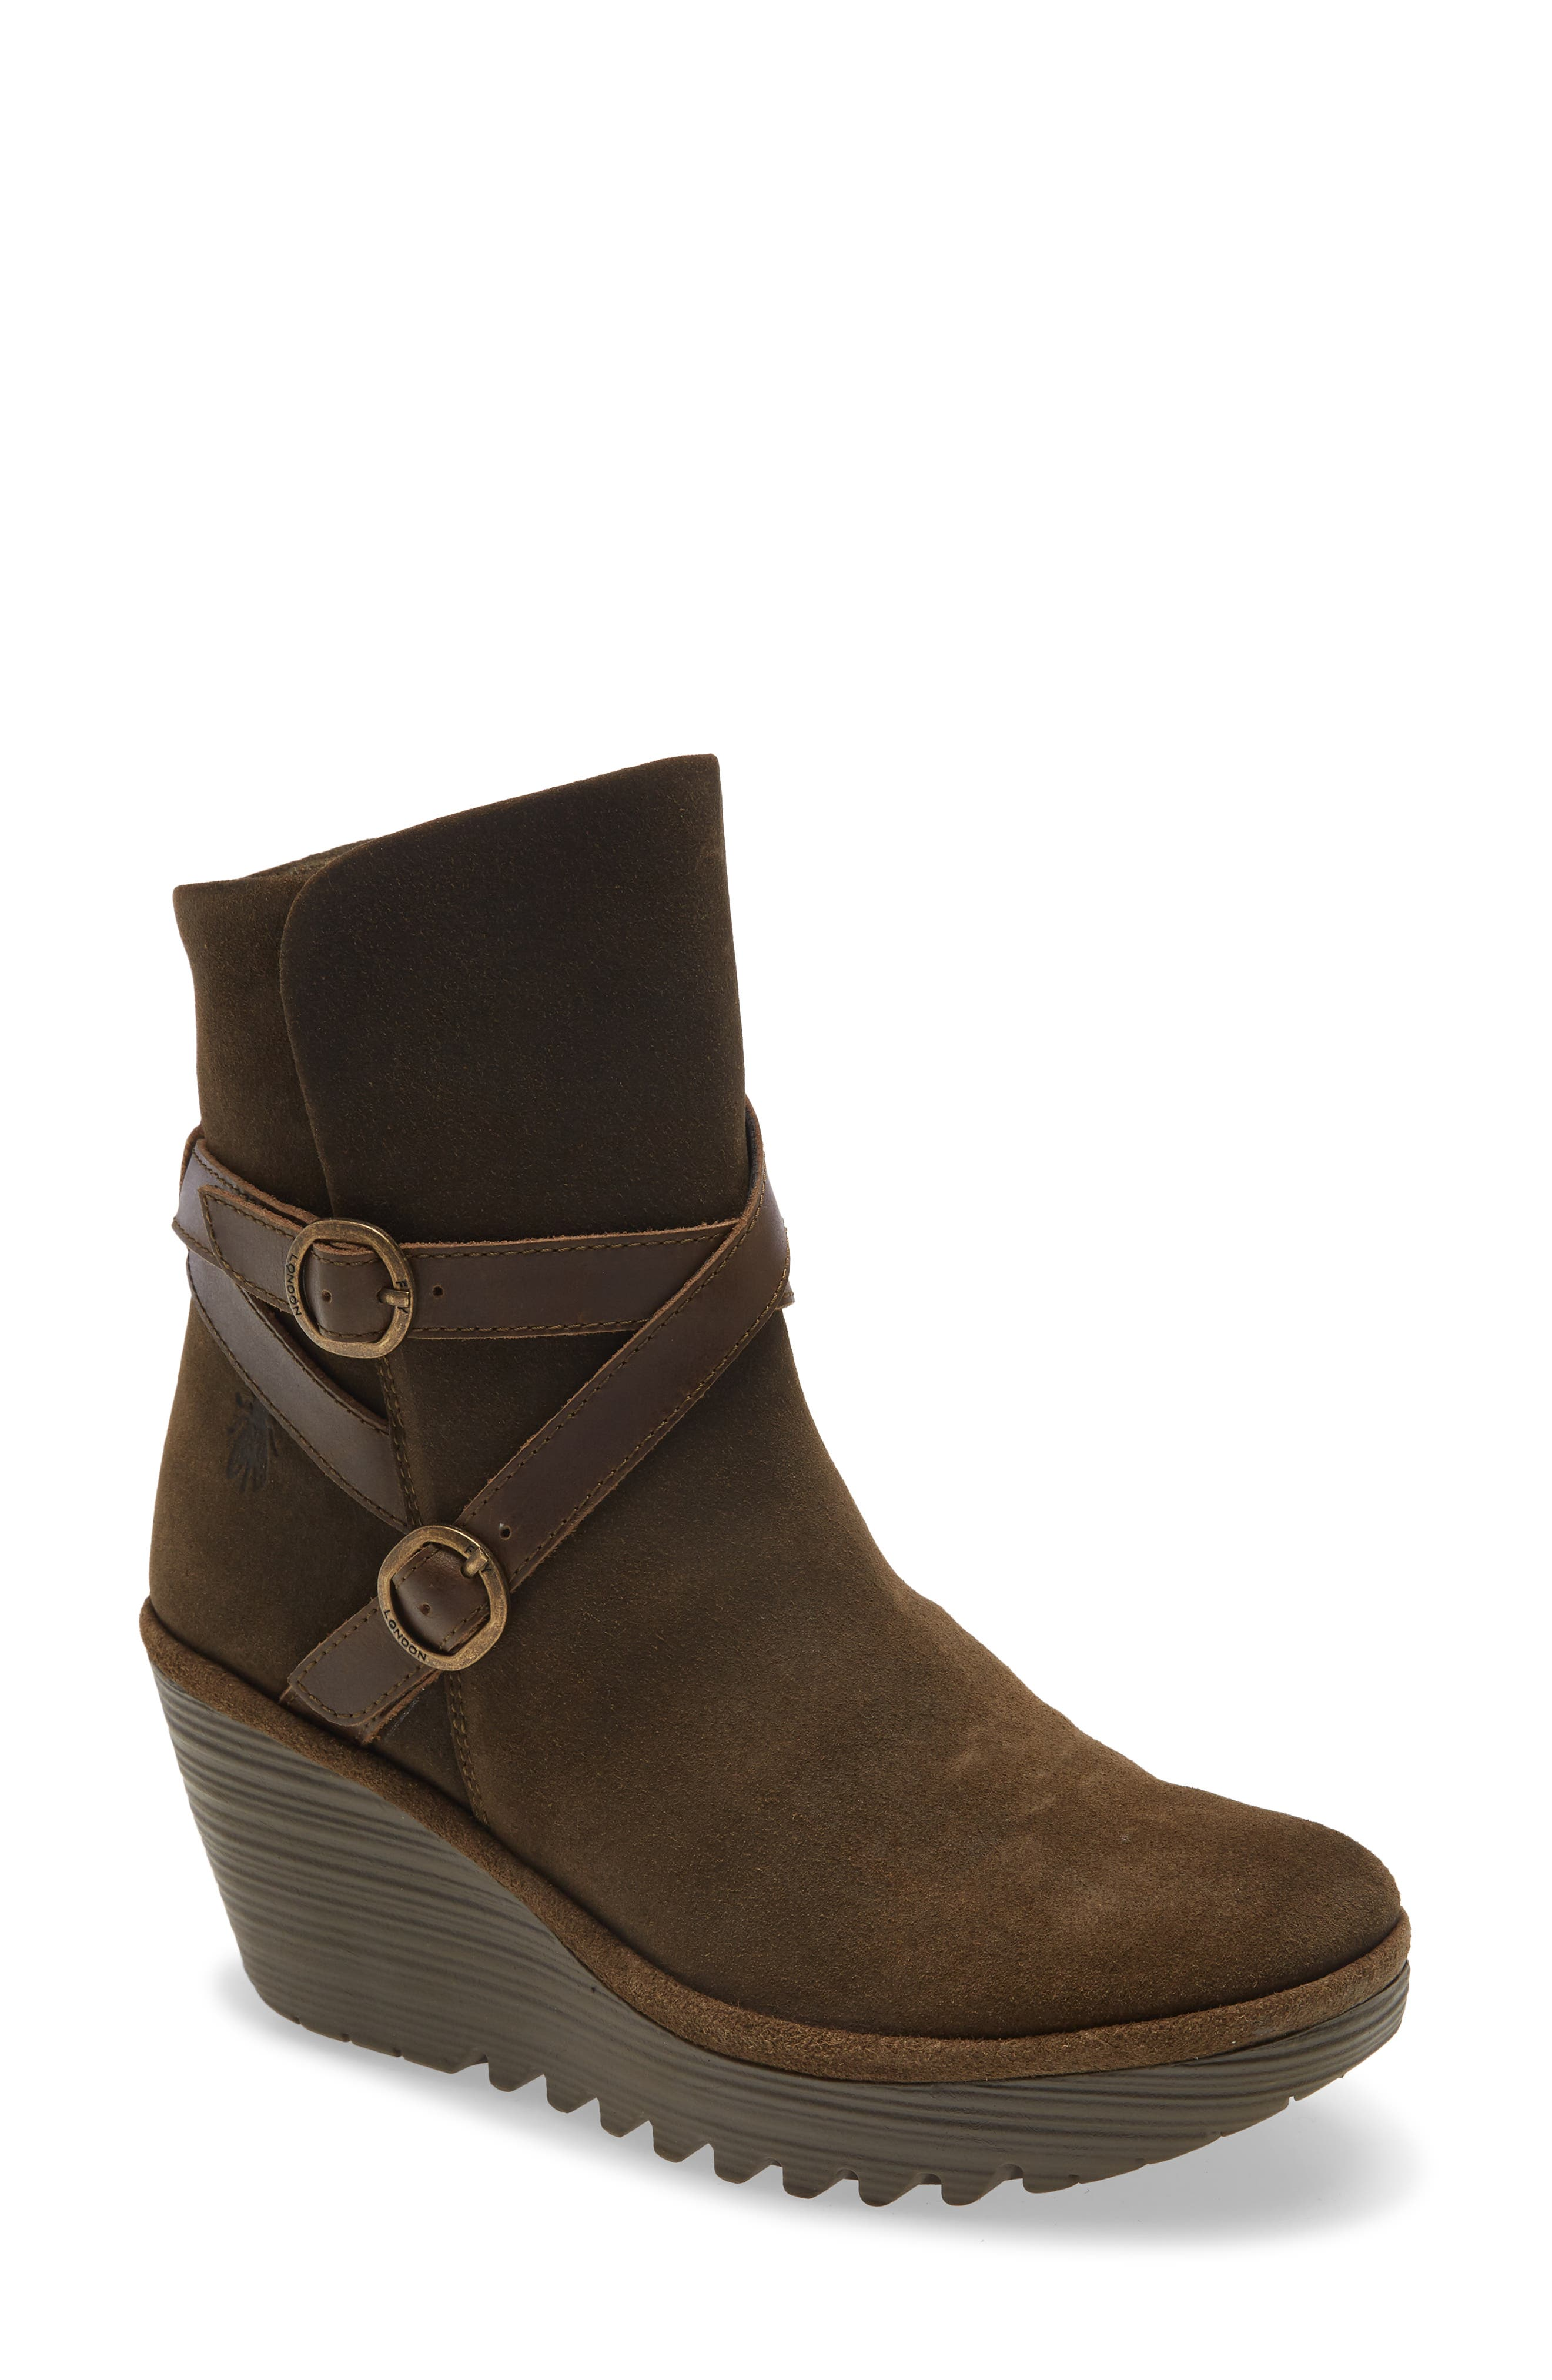 Slim straps and tiny buckles wrap around the ankle and bring subtle moto edge to a chic boot lofted by a textured, walkable wedge. Style Name: Fly London Yemo Buckle Wedge Boot (Women). Style Number: 6094336. Available in stores.